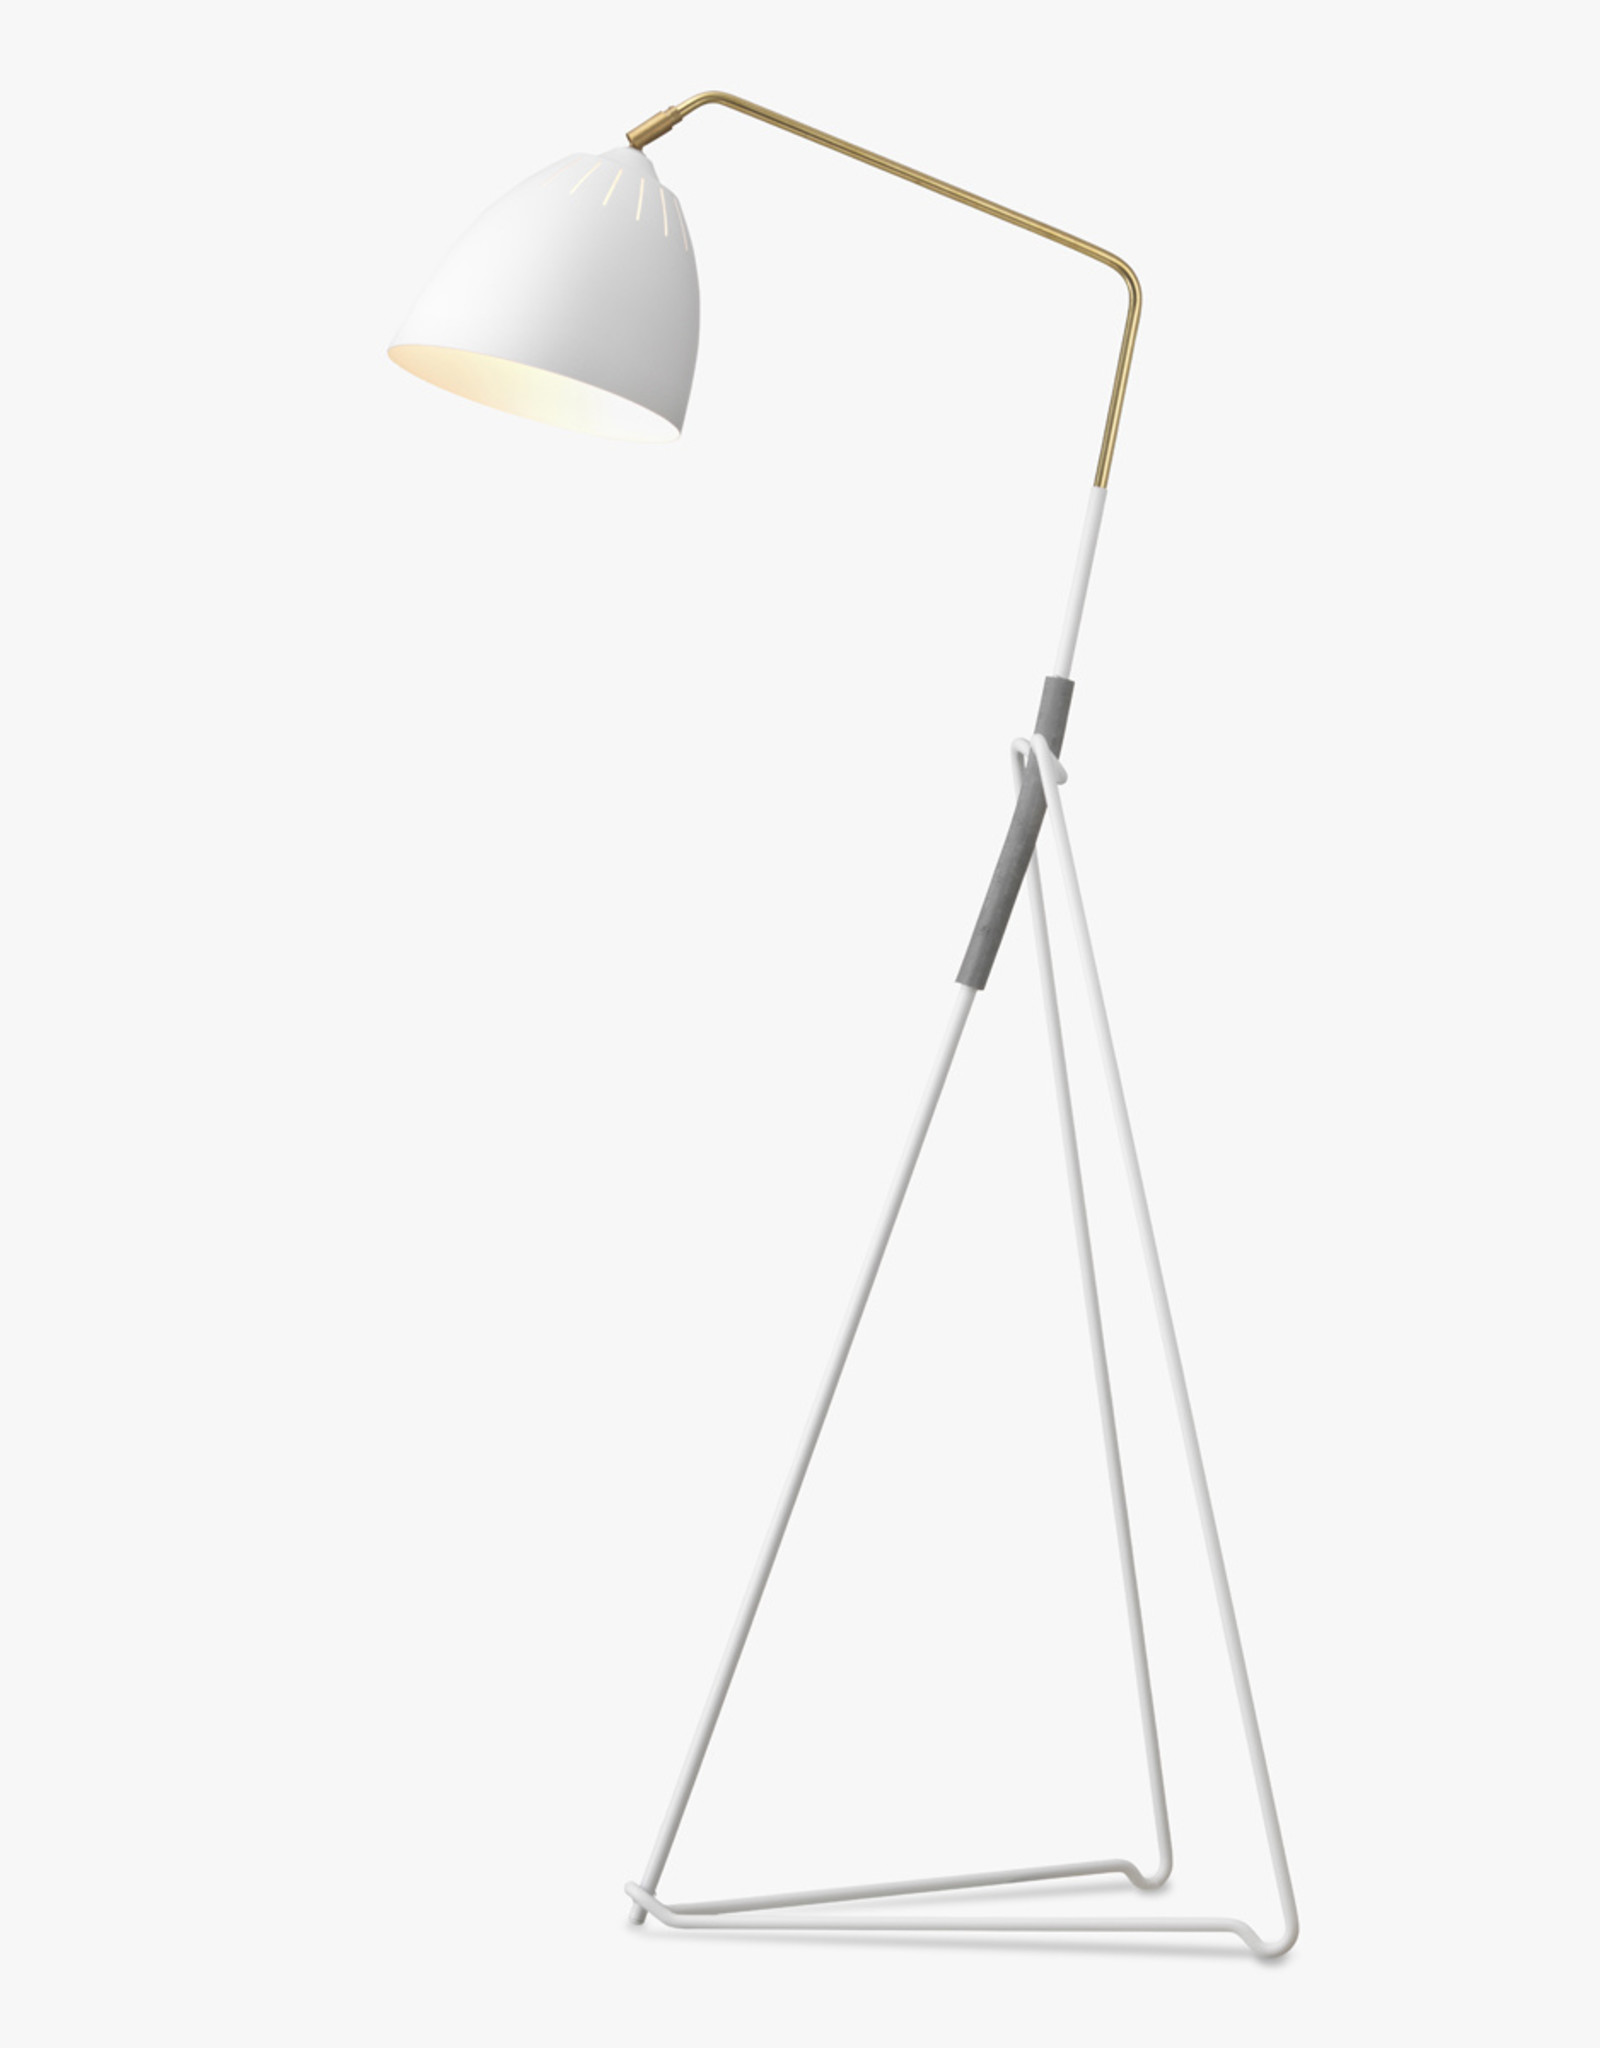 Lean floor light by Jenny Bäck | White | W68cm x H130cm | 1x E27 7W LED bulb required